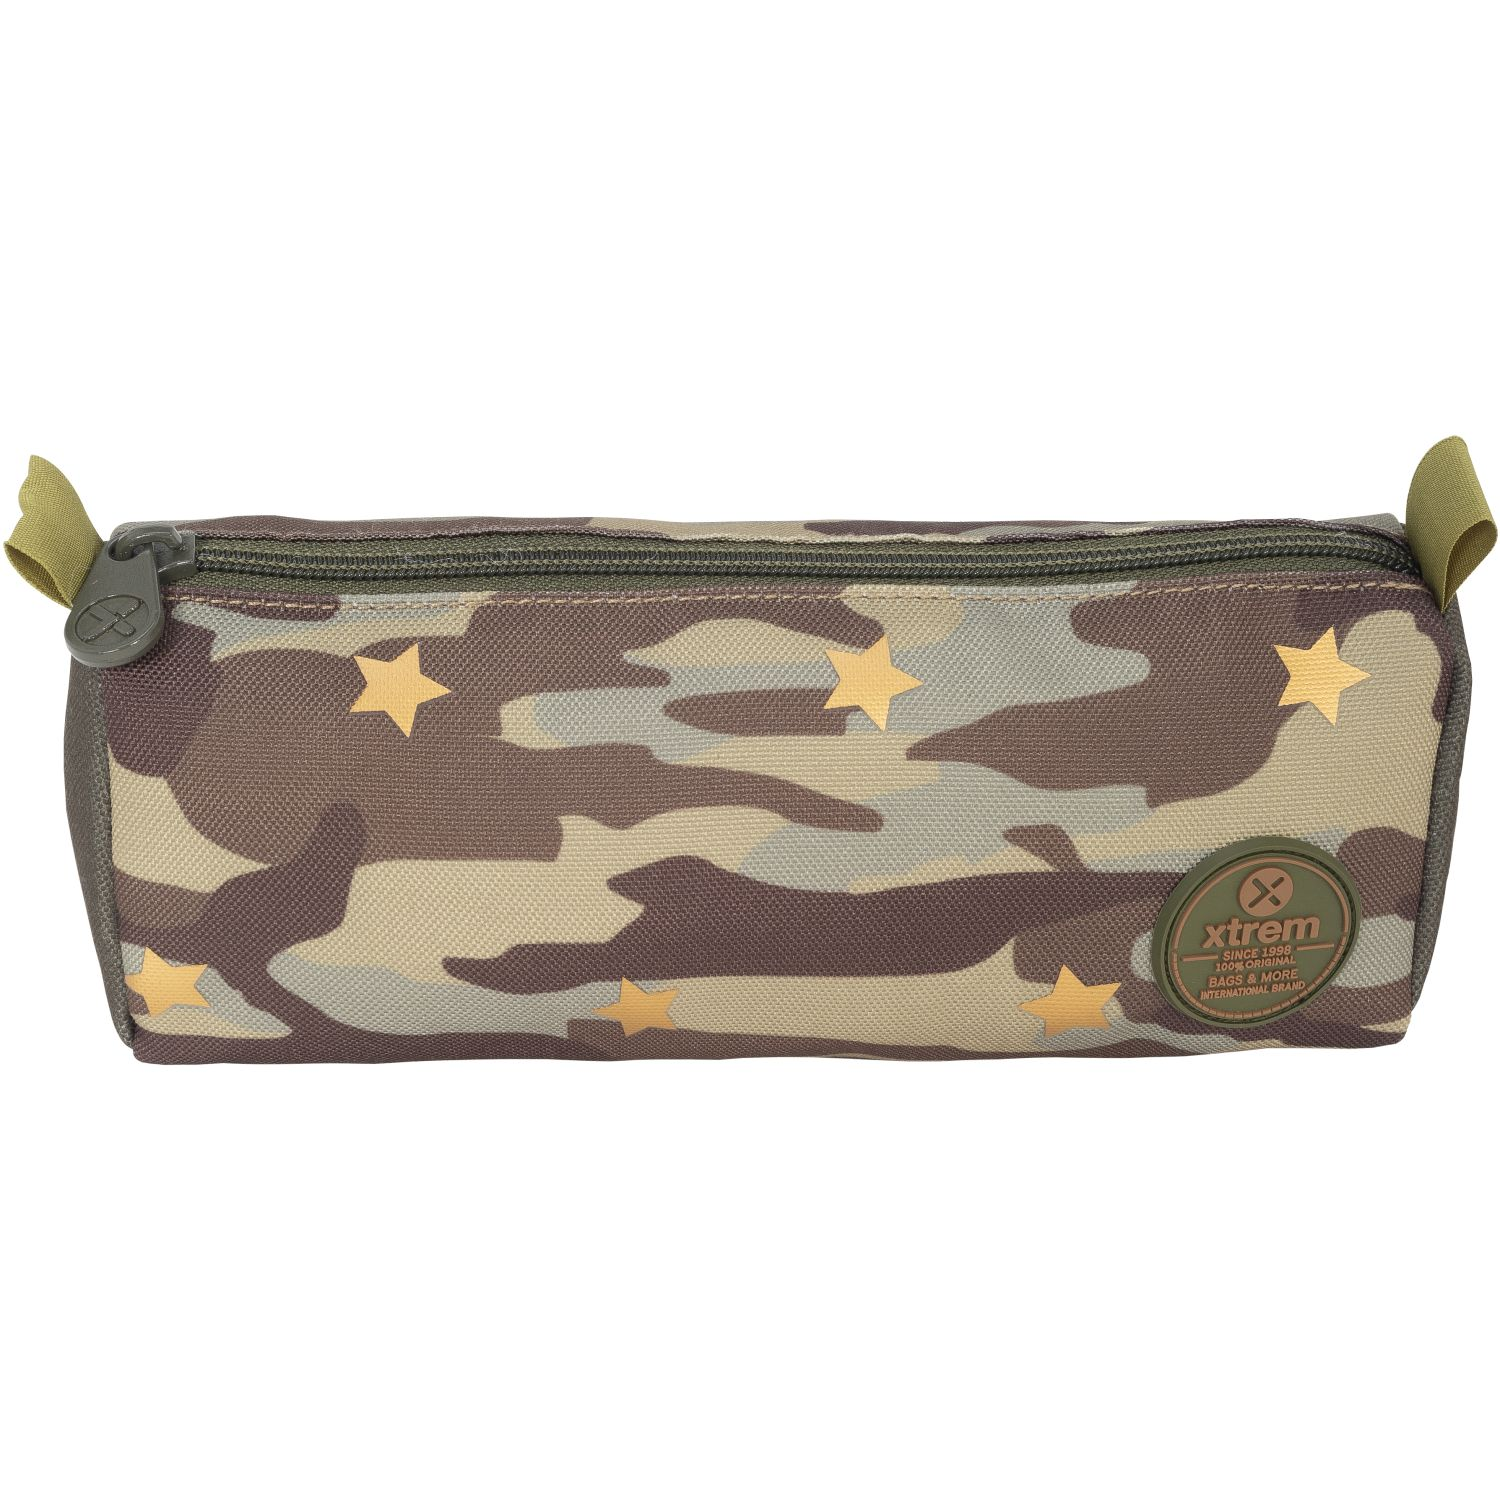 Xtrem Pencil Box CAMO STAR GREEN CRUSH 907 Varios portalápices